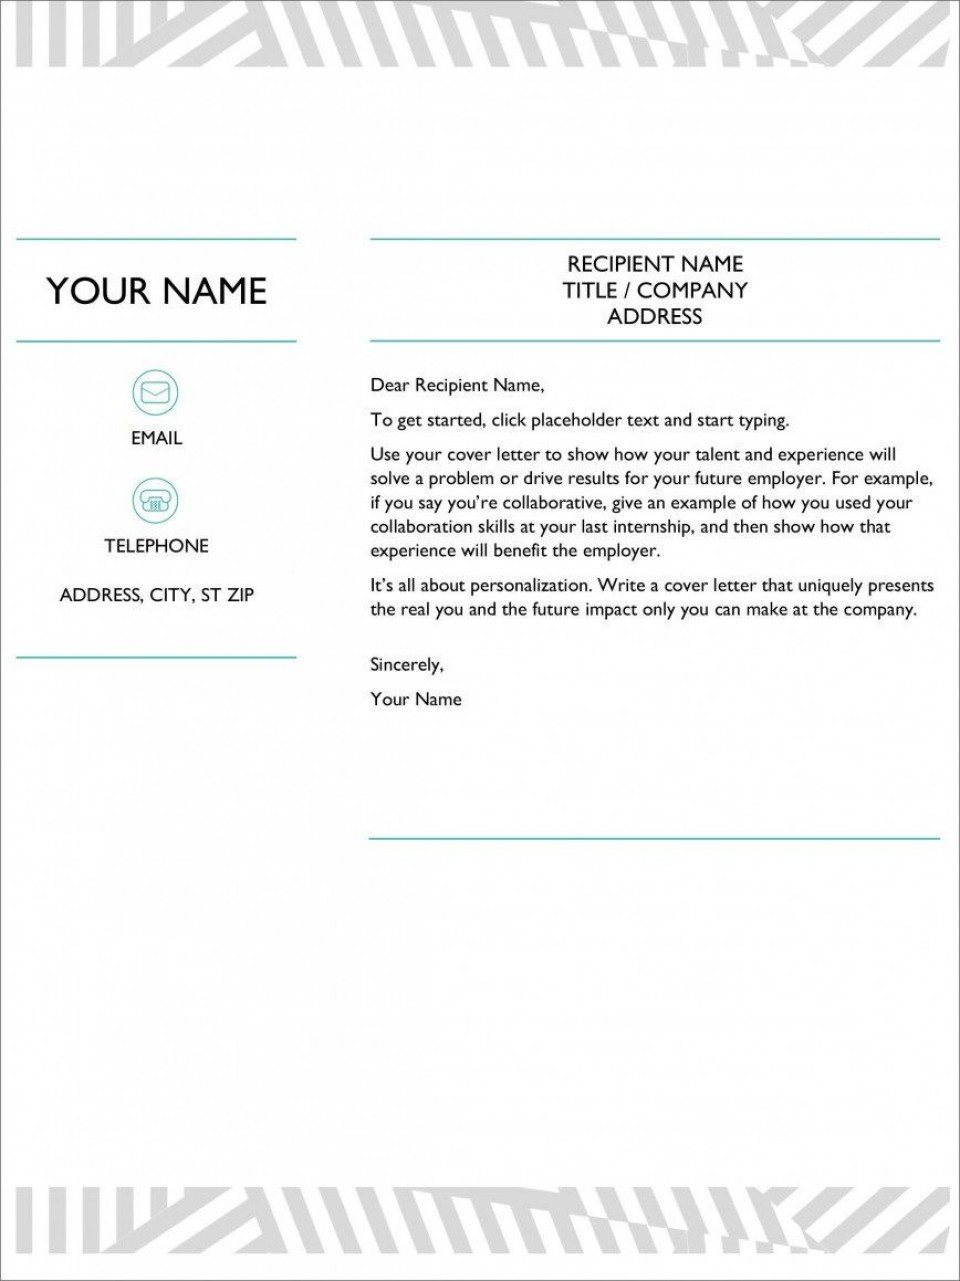 009 Astounding Resume Cover Letter Template Microsoft Word Example 960